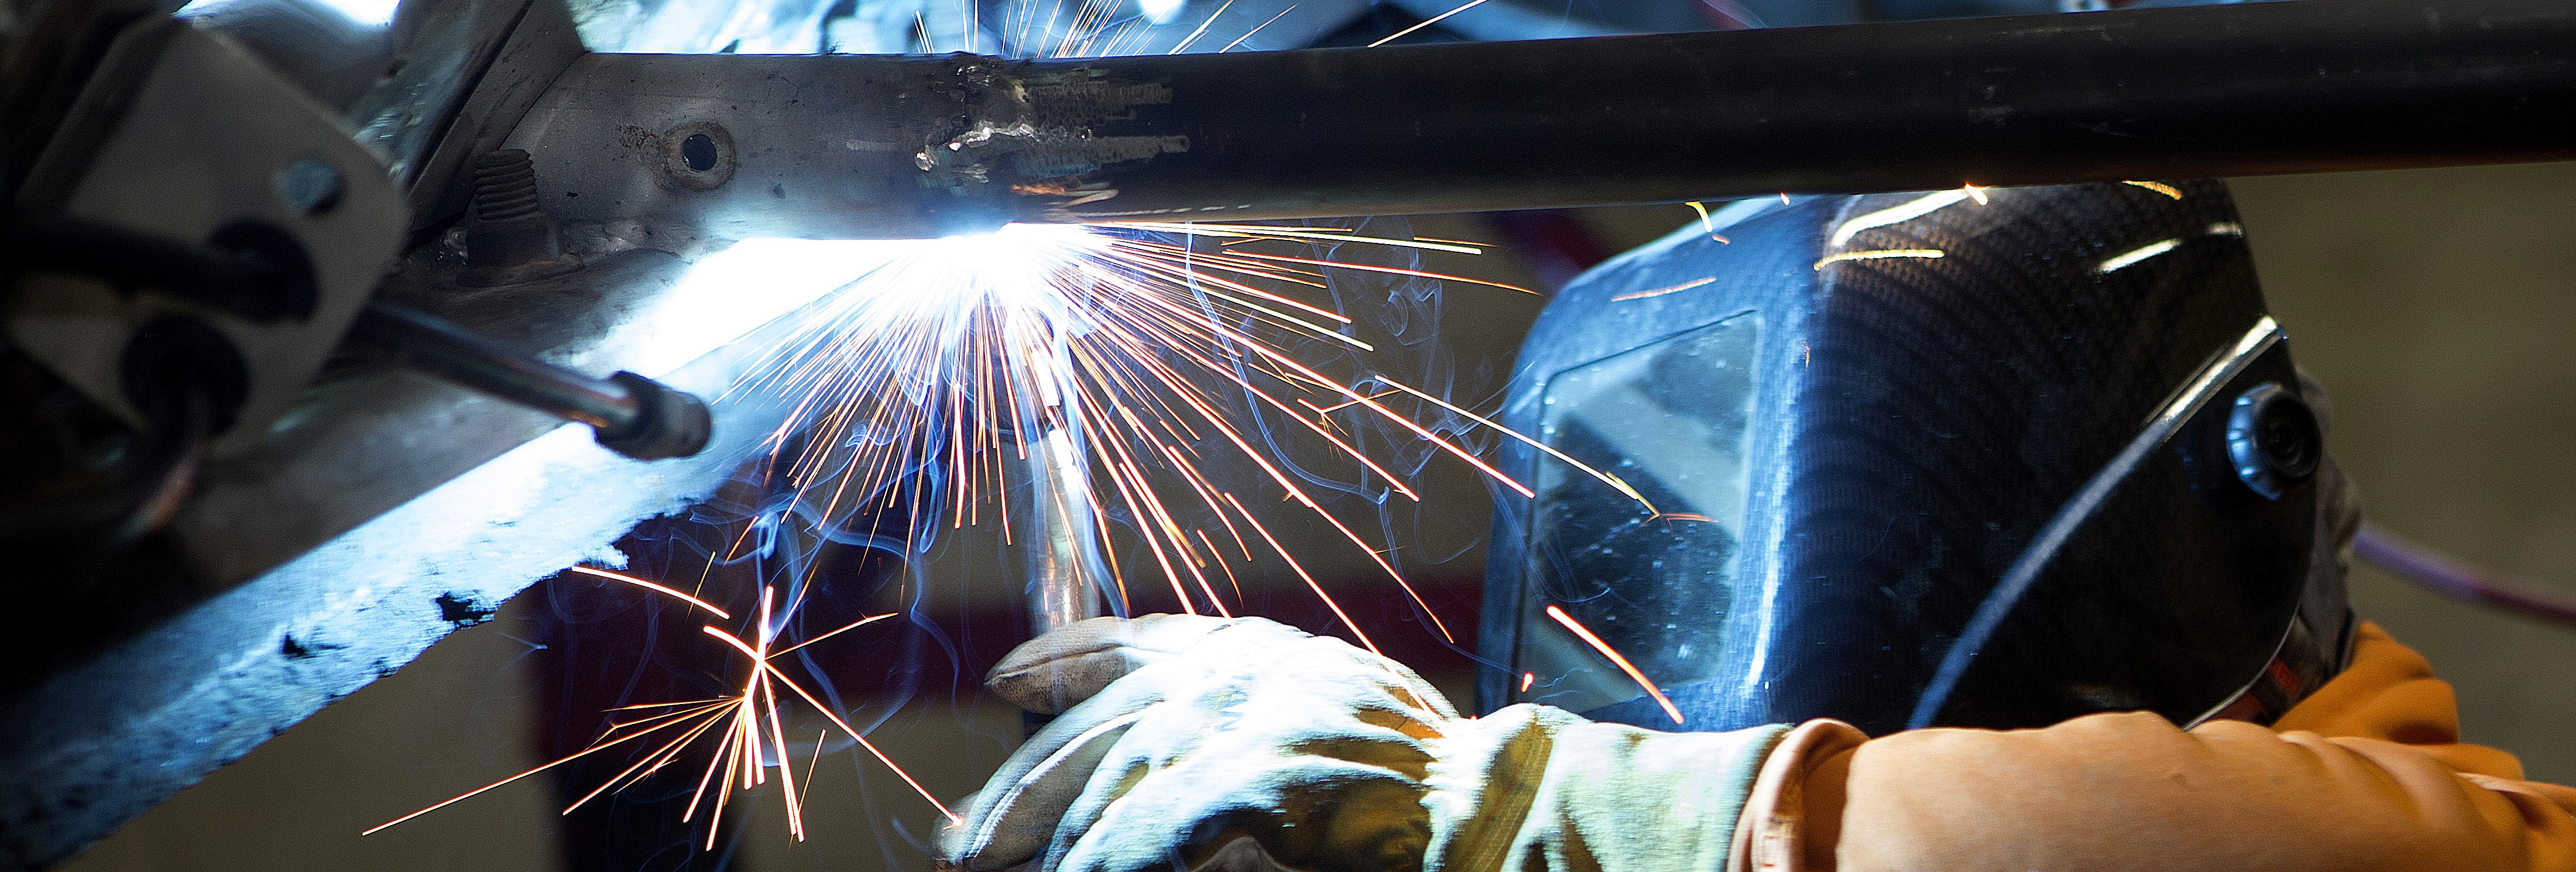 Welding at Ballard, Inc.